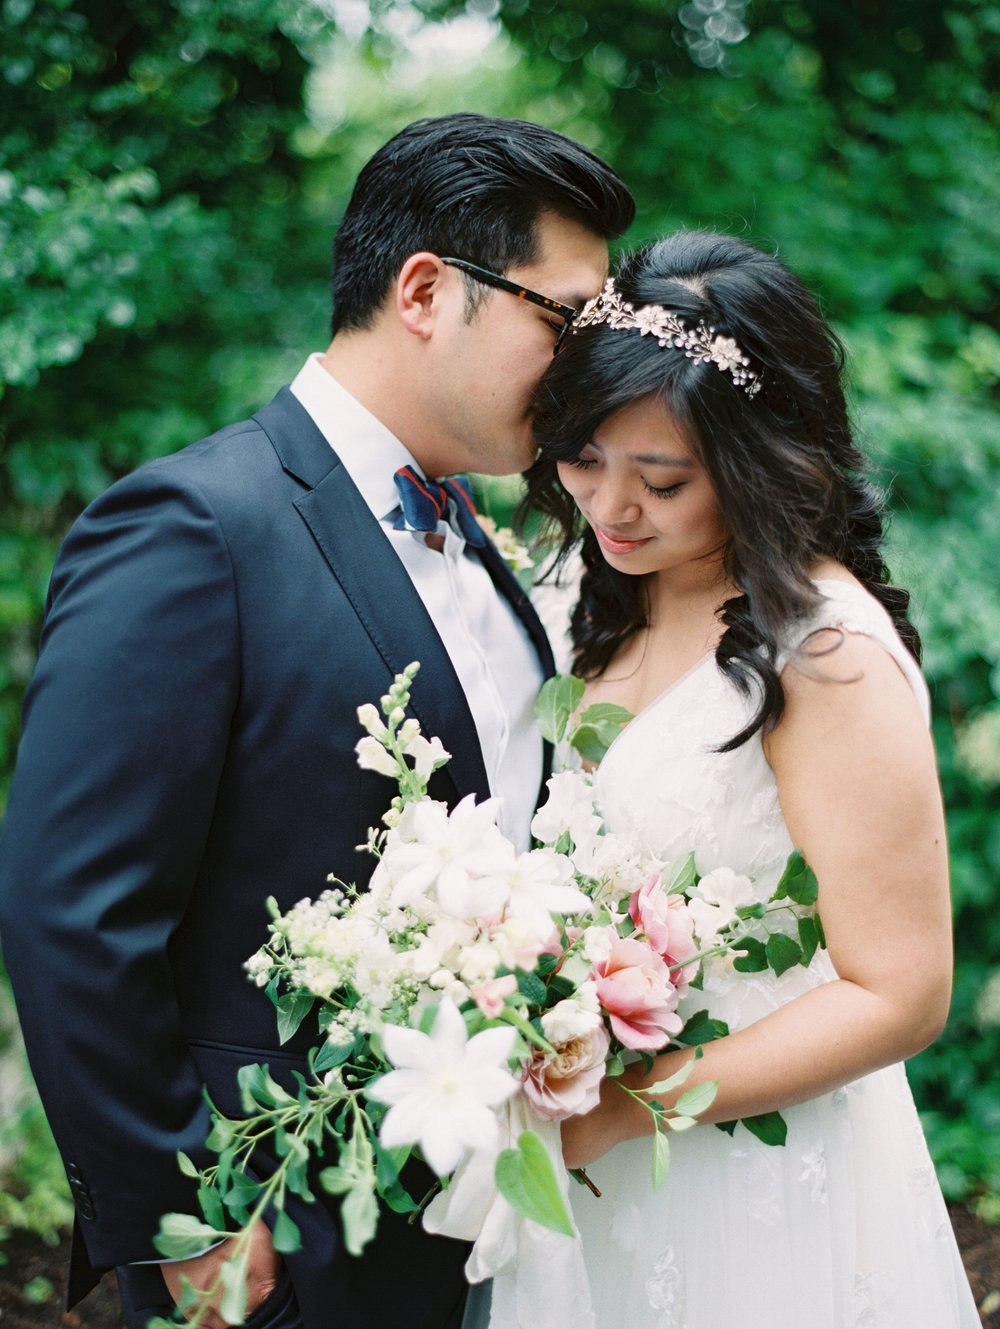 Hannah & Isaac's Gorgeous Garden Wedding in Chappaqua